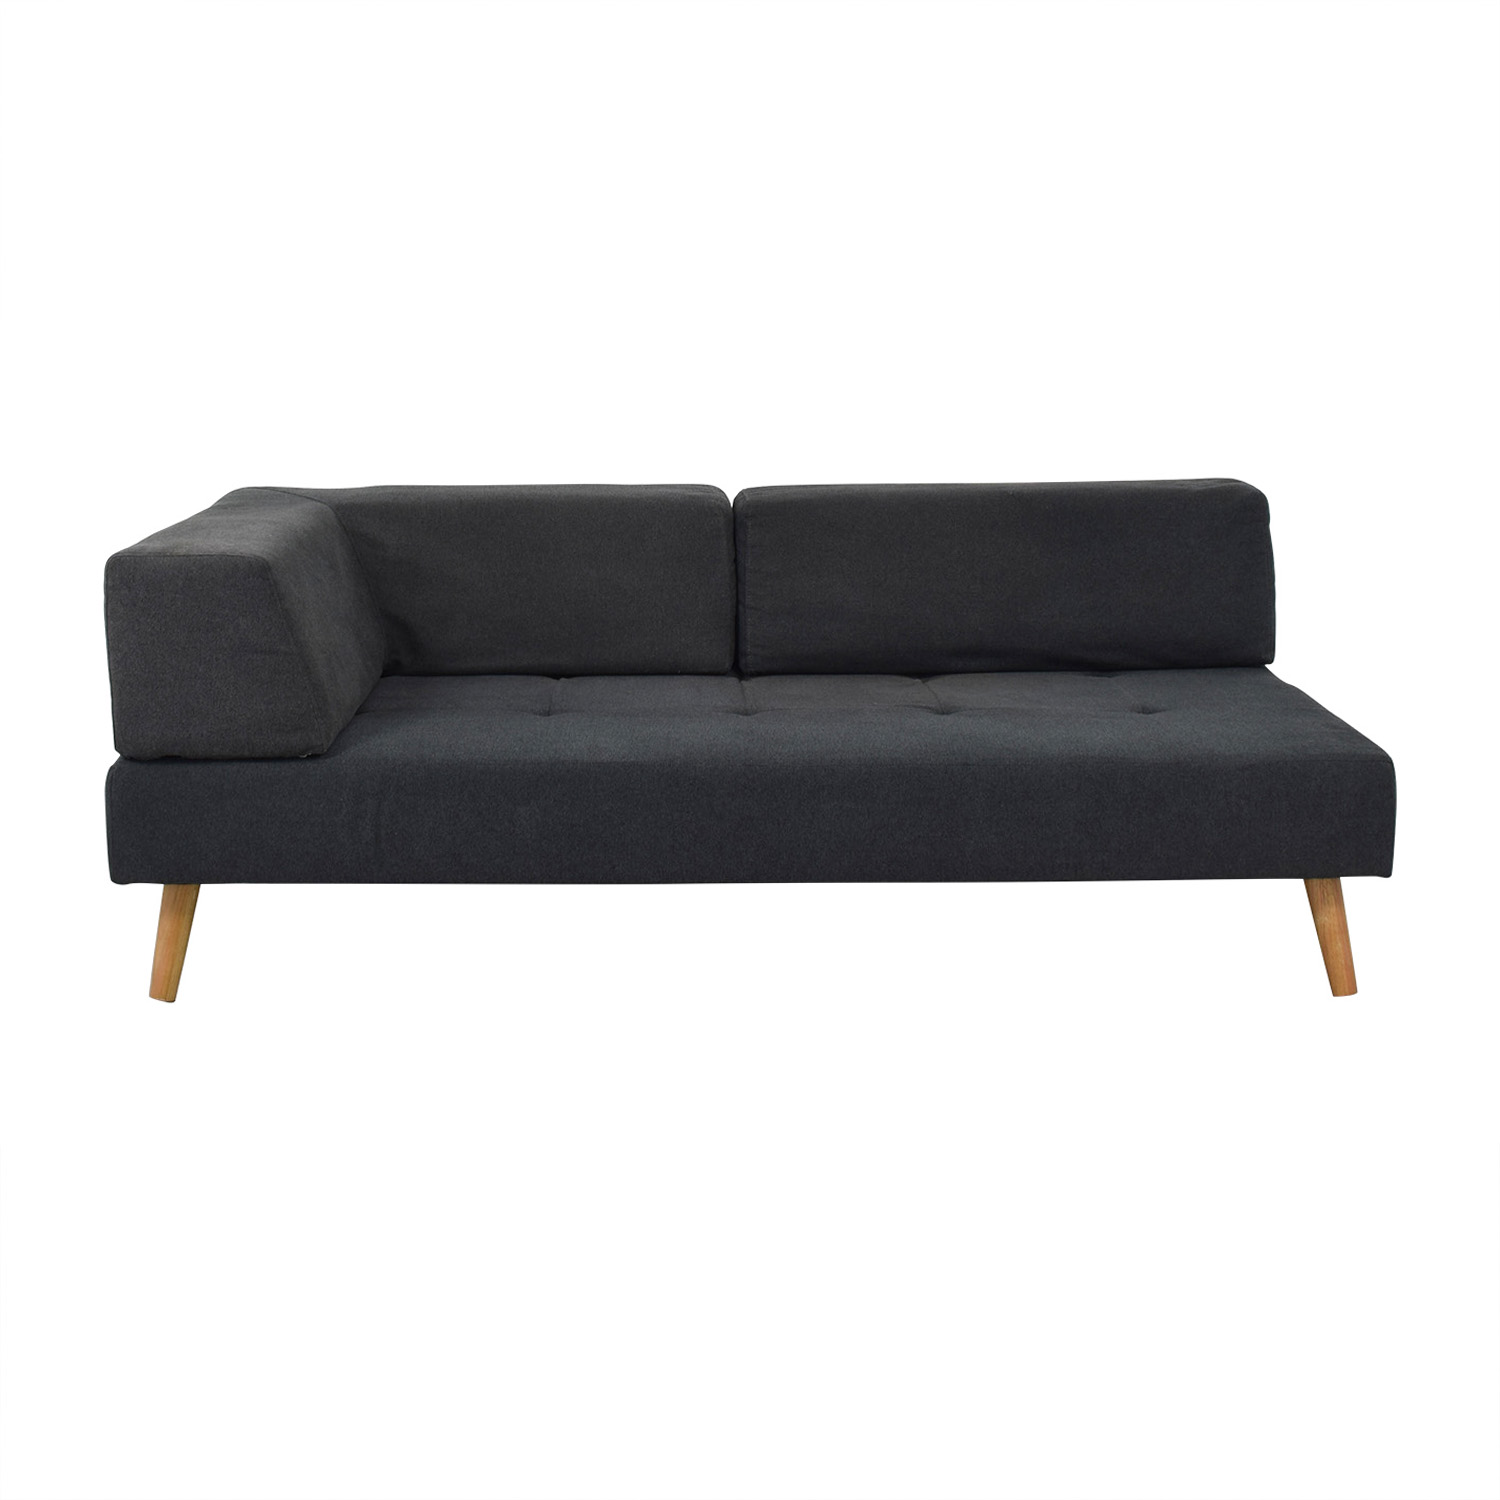 West Elm West Elm Tillary Retro Sofa